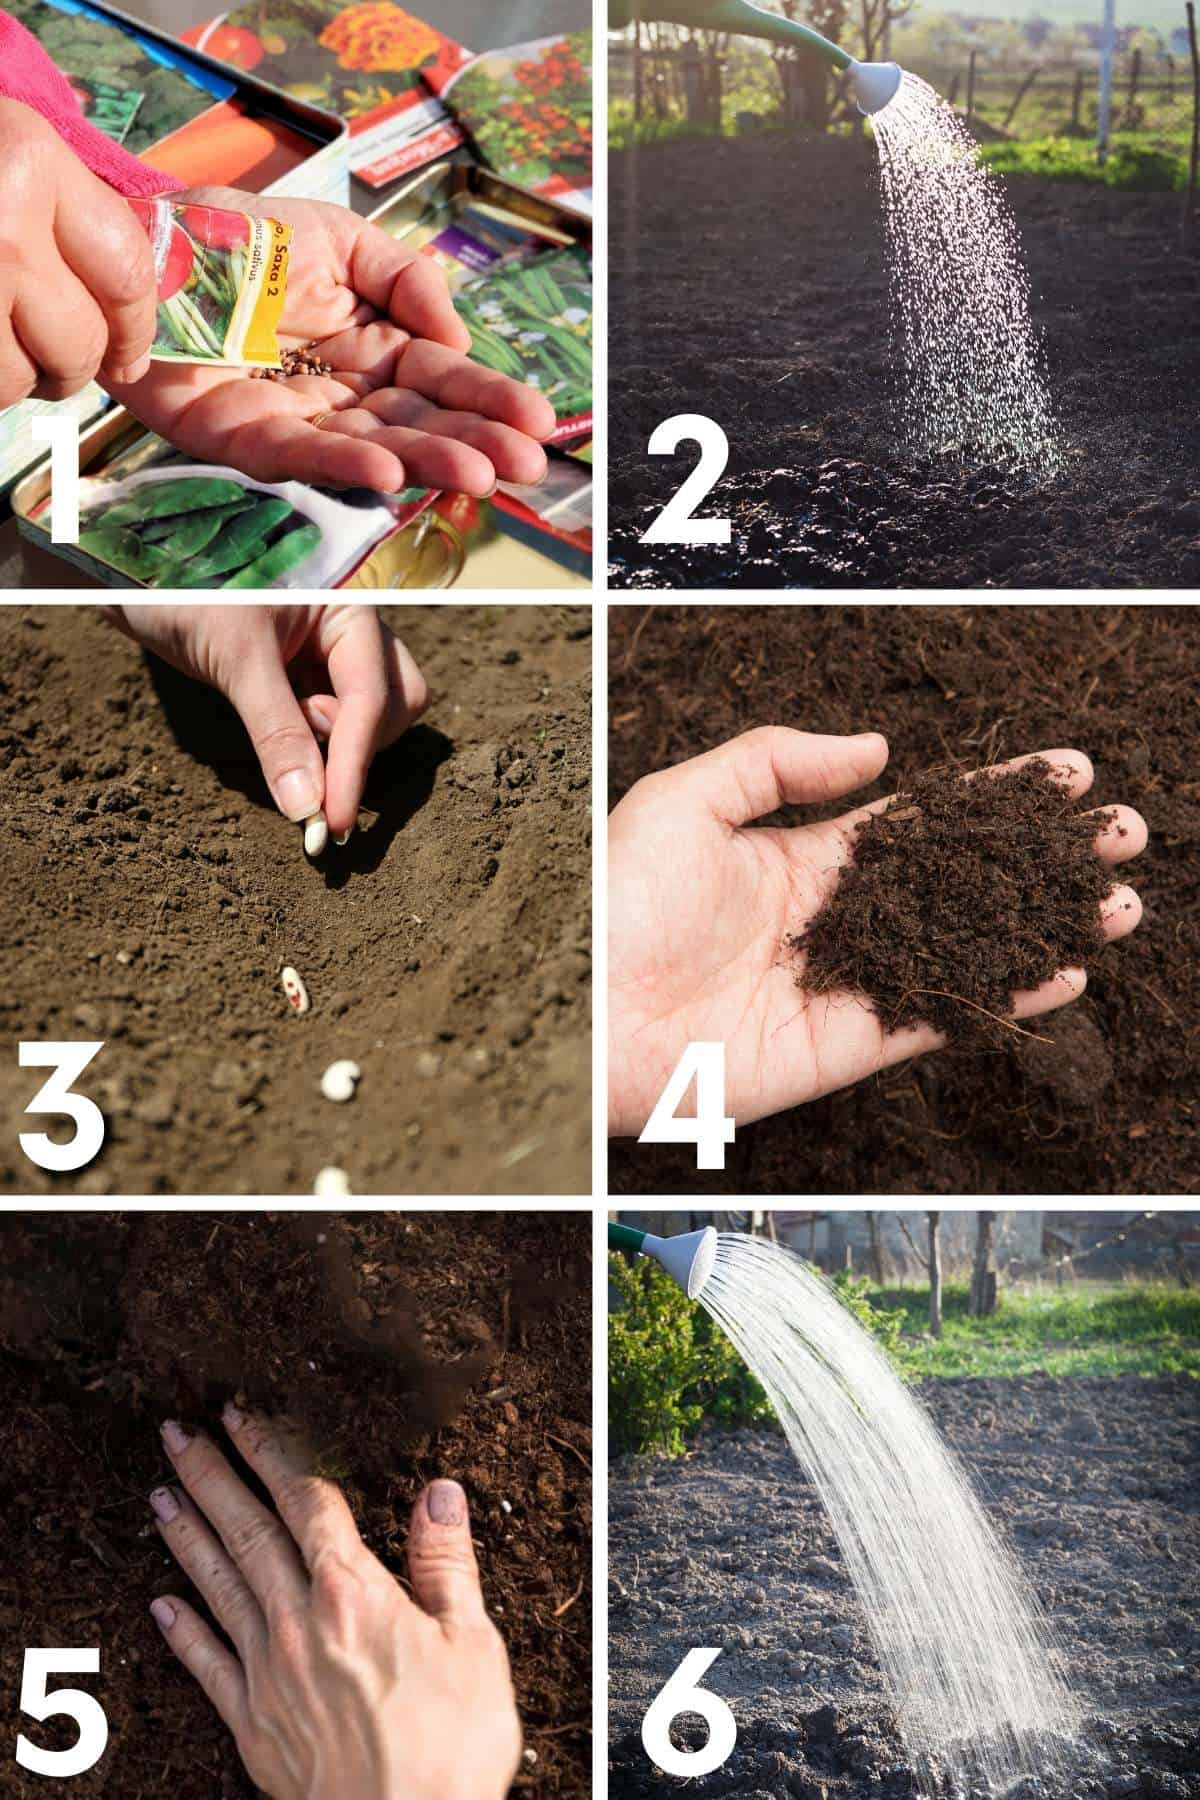 Step by step image of how to direct sow seeds in the garden.